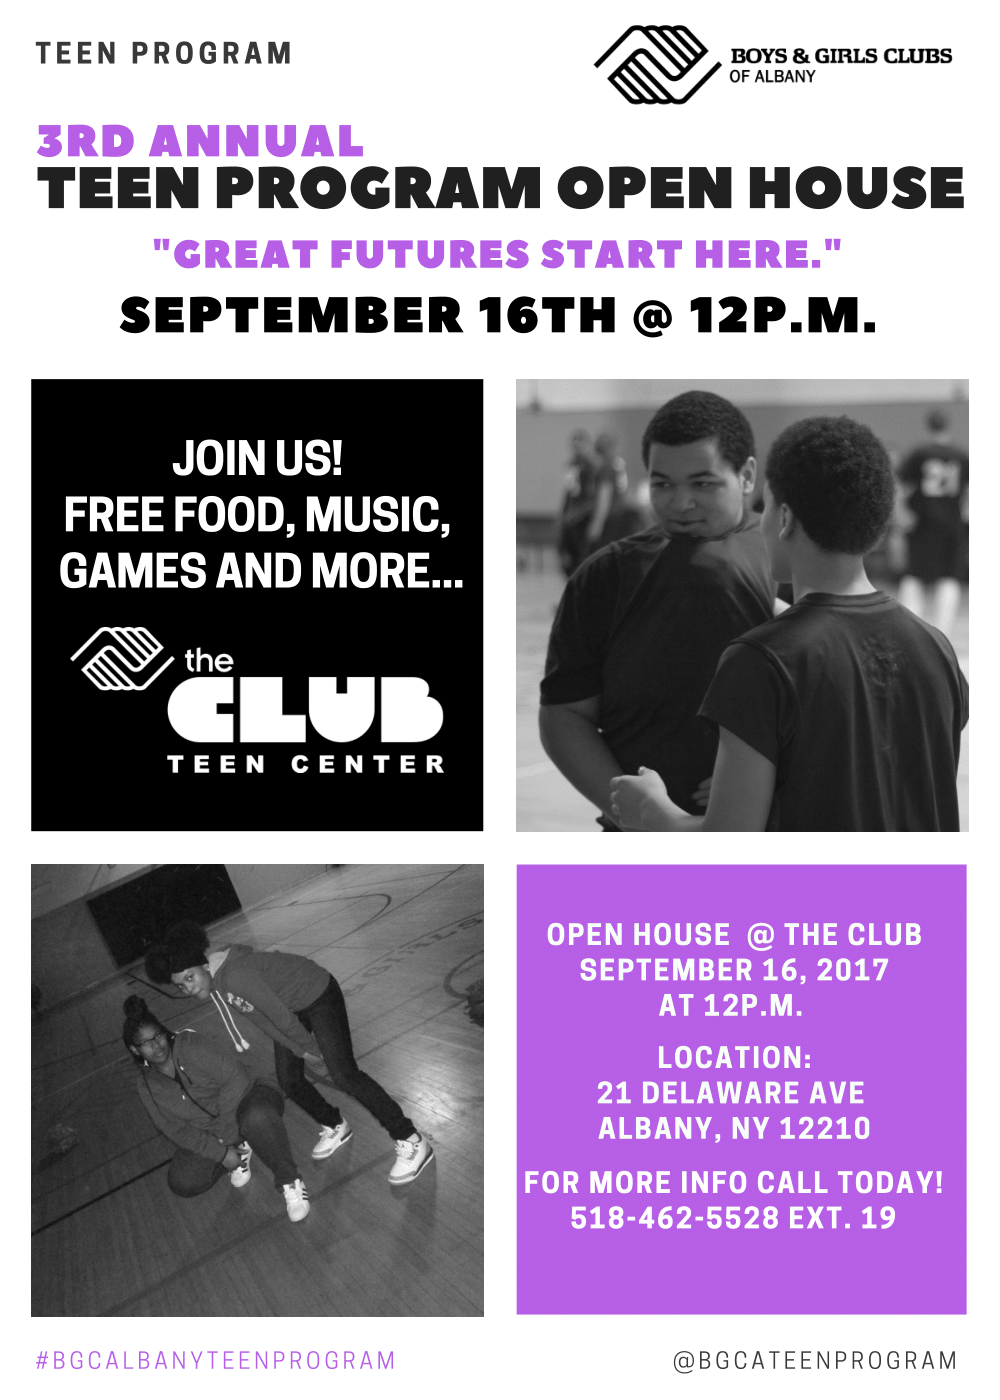 Boys & Girls Clubs of Albany Teen Program 8.2.17-1